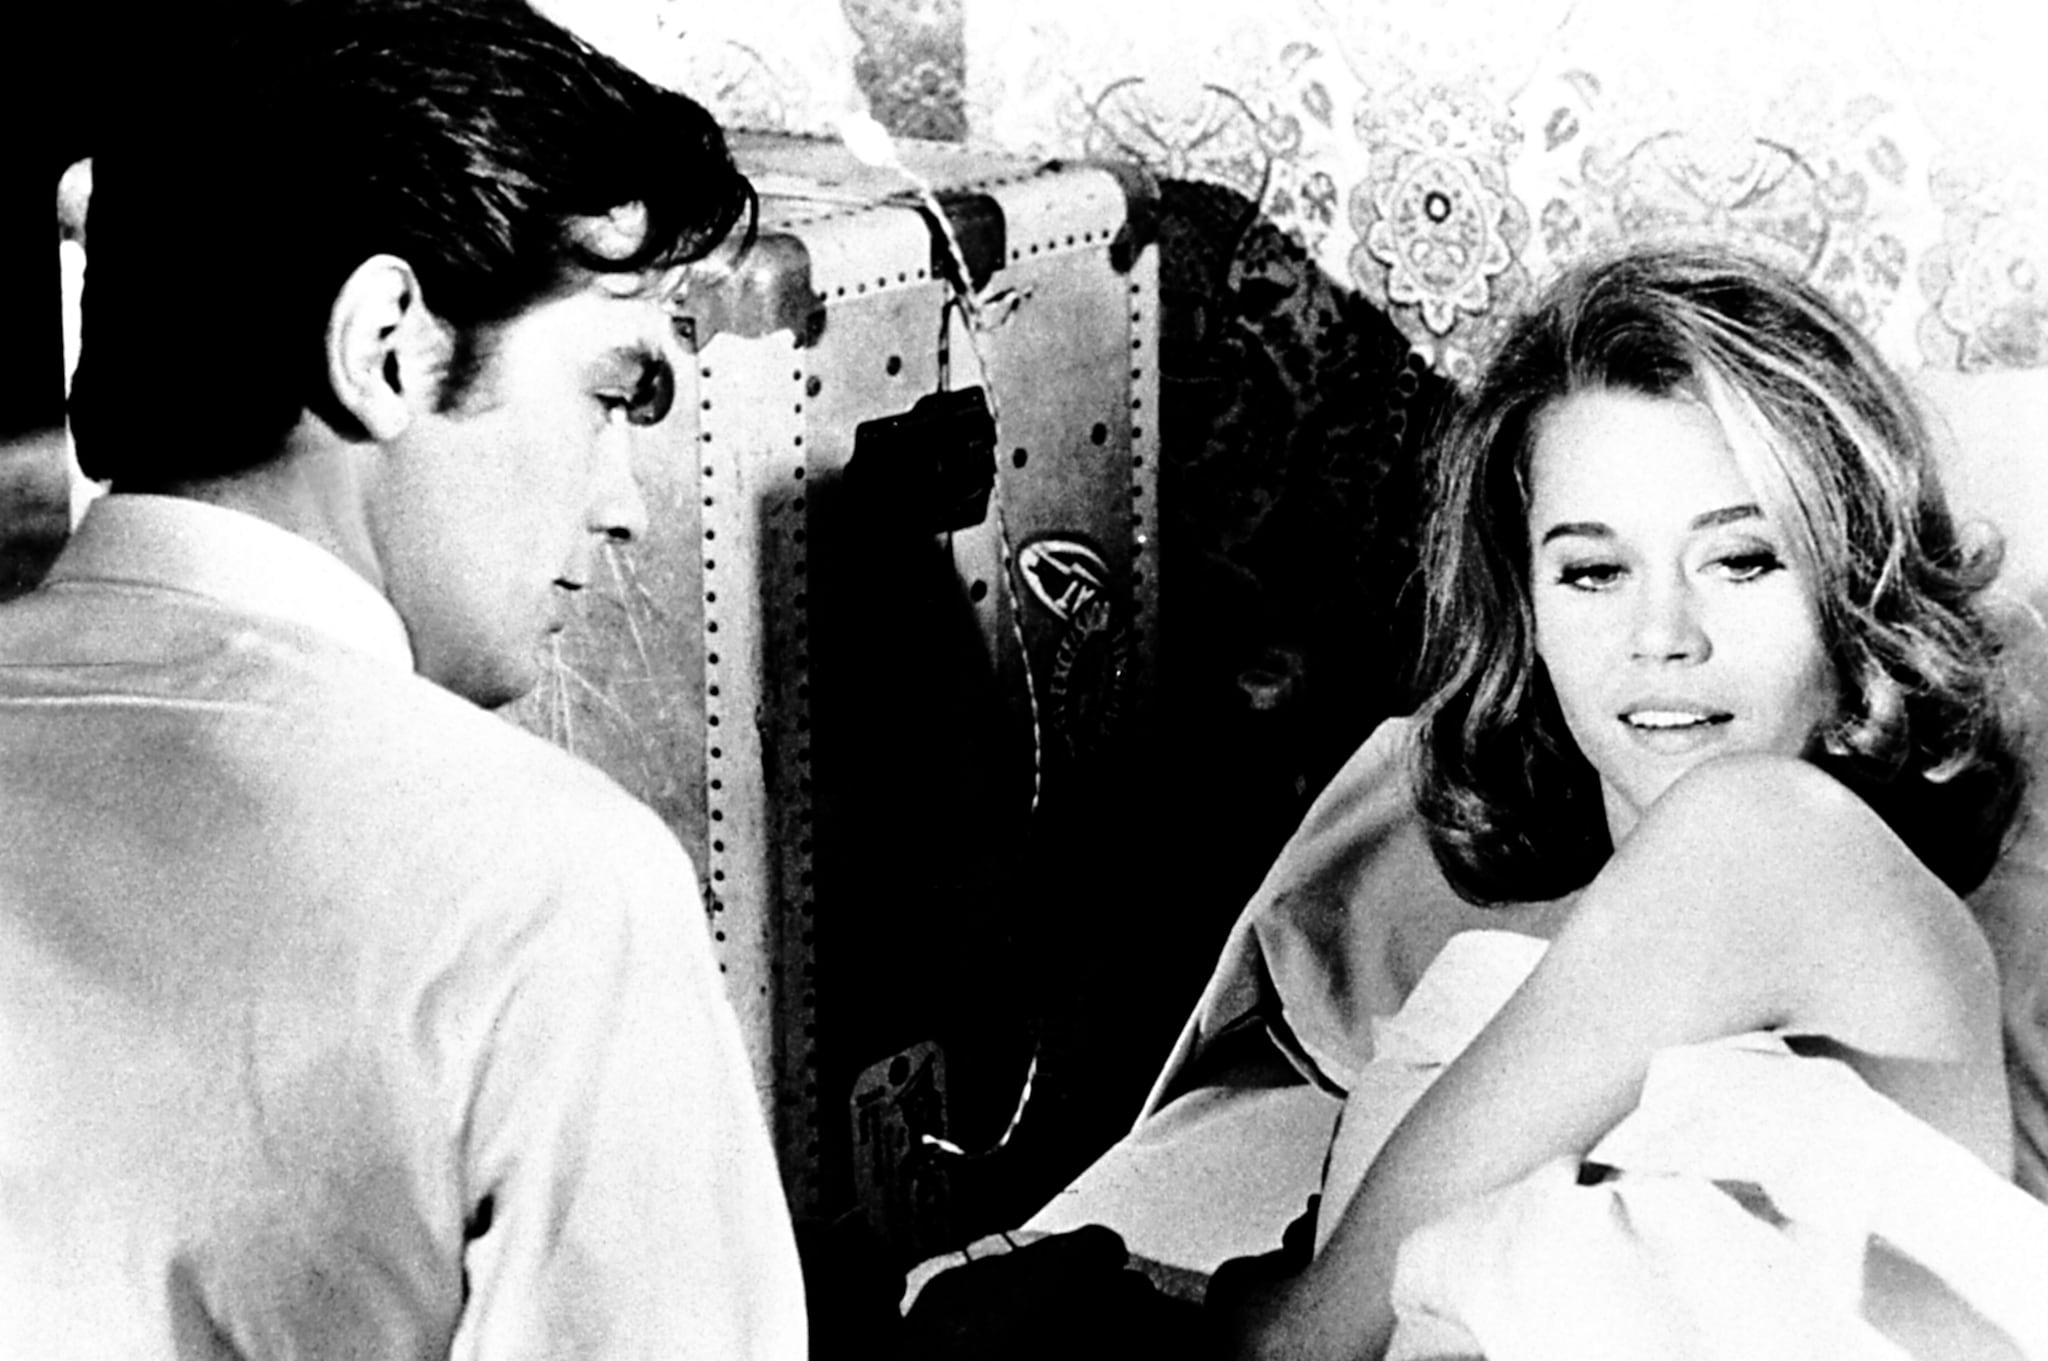 «Crisantemi per un delitto» del 1964, di Rene Clement, con Alain Delon e Jane Fonda. (Collection Christophel © MGM / Cite films / CIPRA)